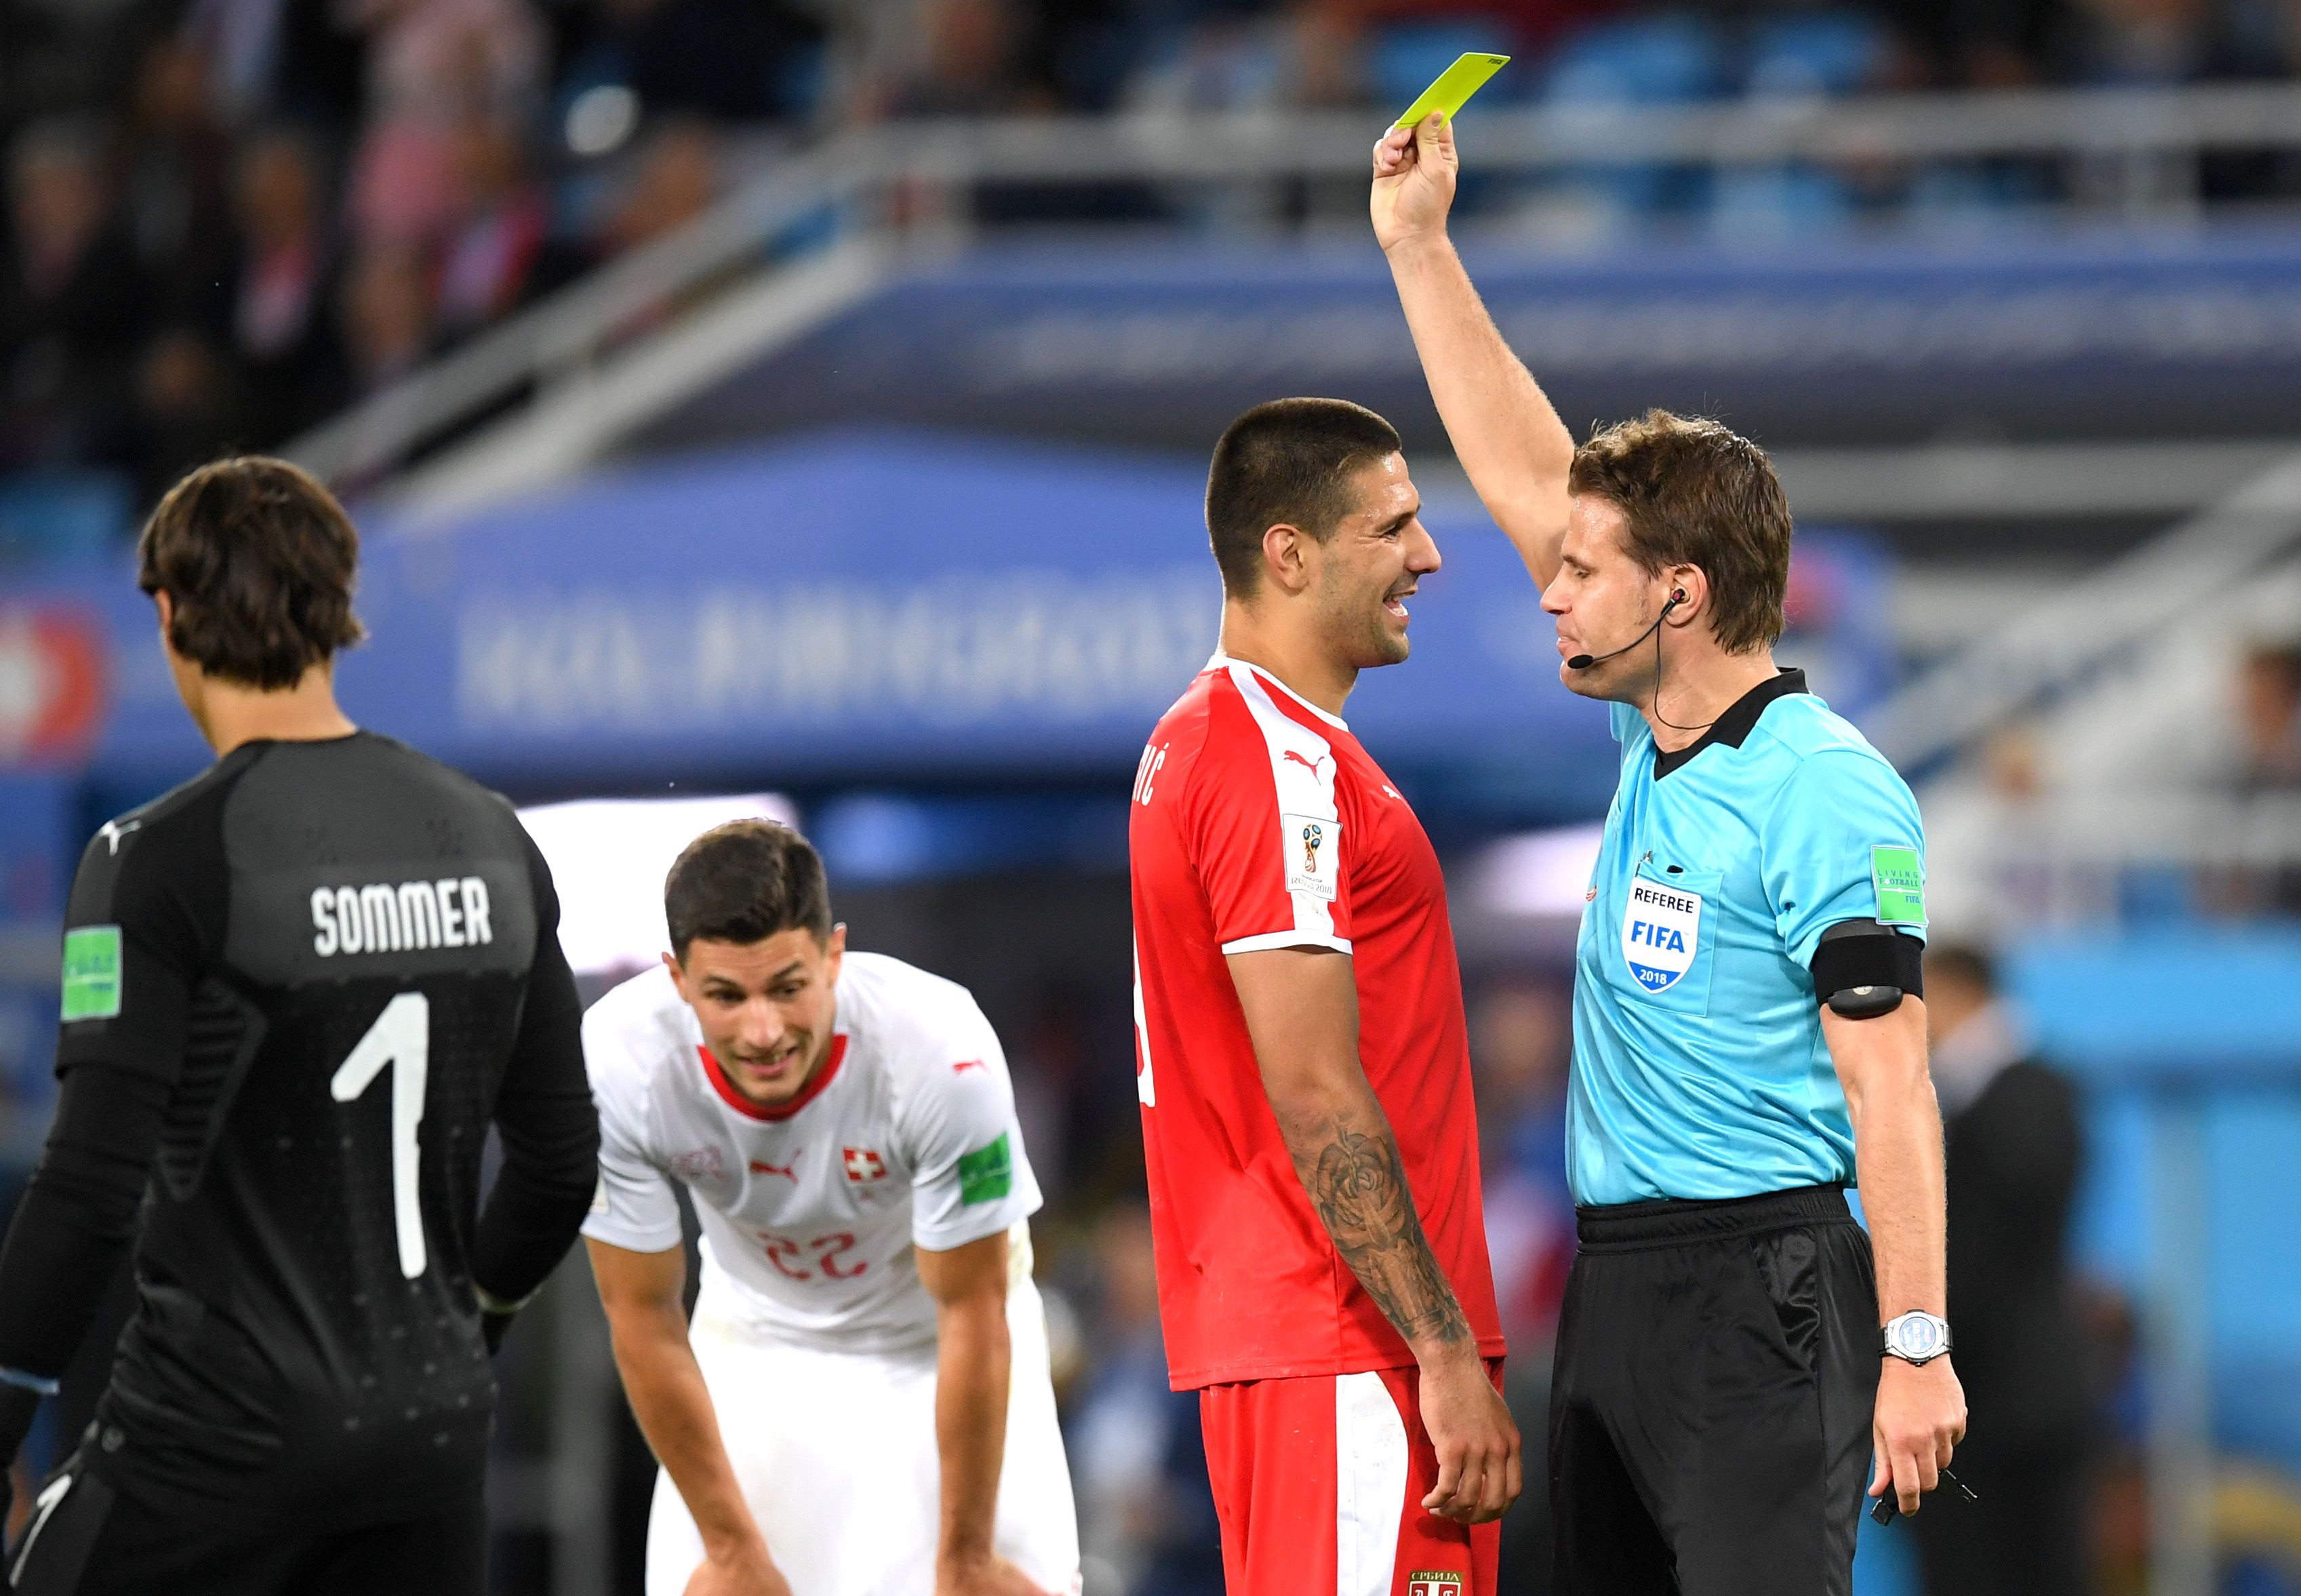 Serbia's Aleksandar Mitrovic is shown a yellow card by referee Felix Brych during the 2018 FIFA World Cup Group E match against Switzerland at Kaliningrad Stadium on Friday